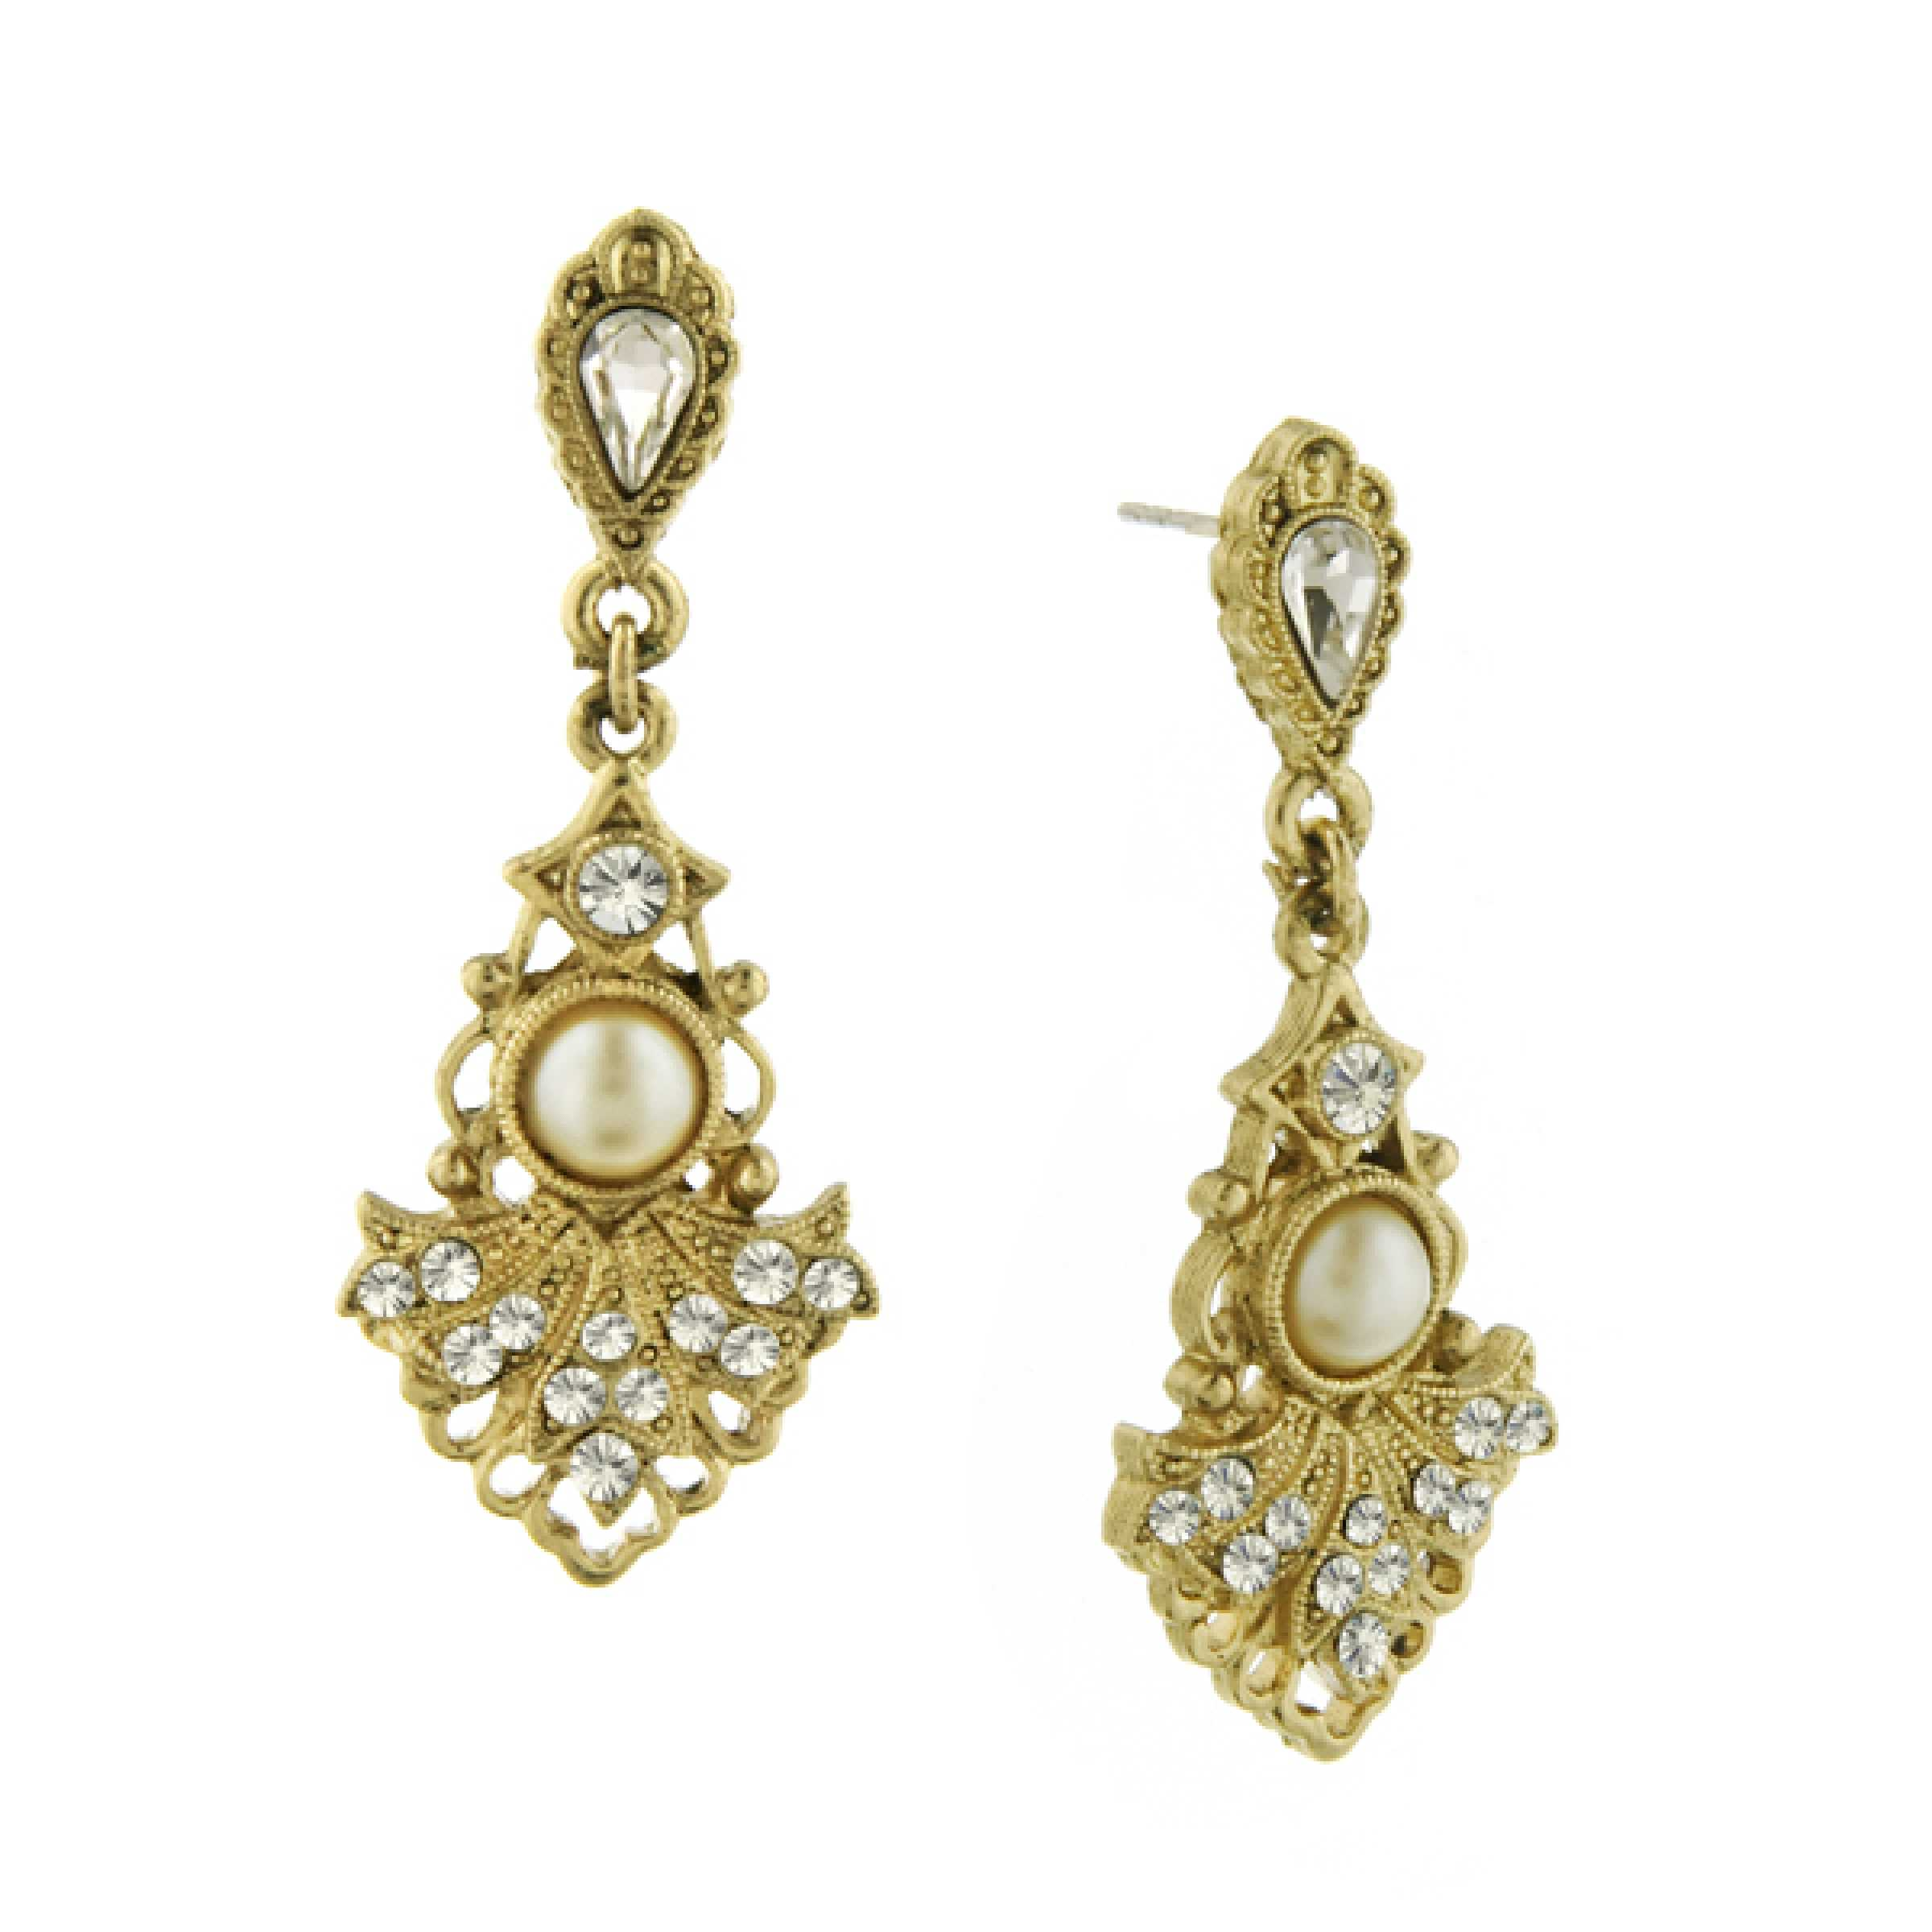 Elegant Crystal and Simulated Pearl Drop Earrings 17537 NEW